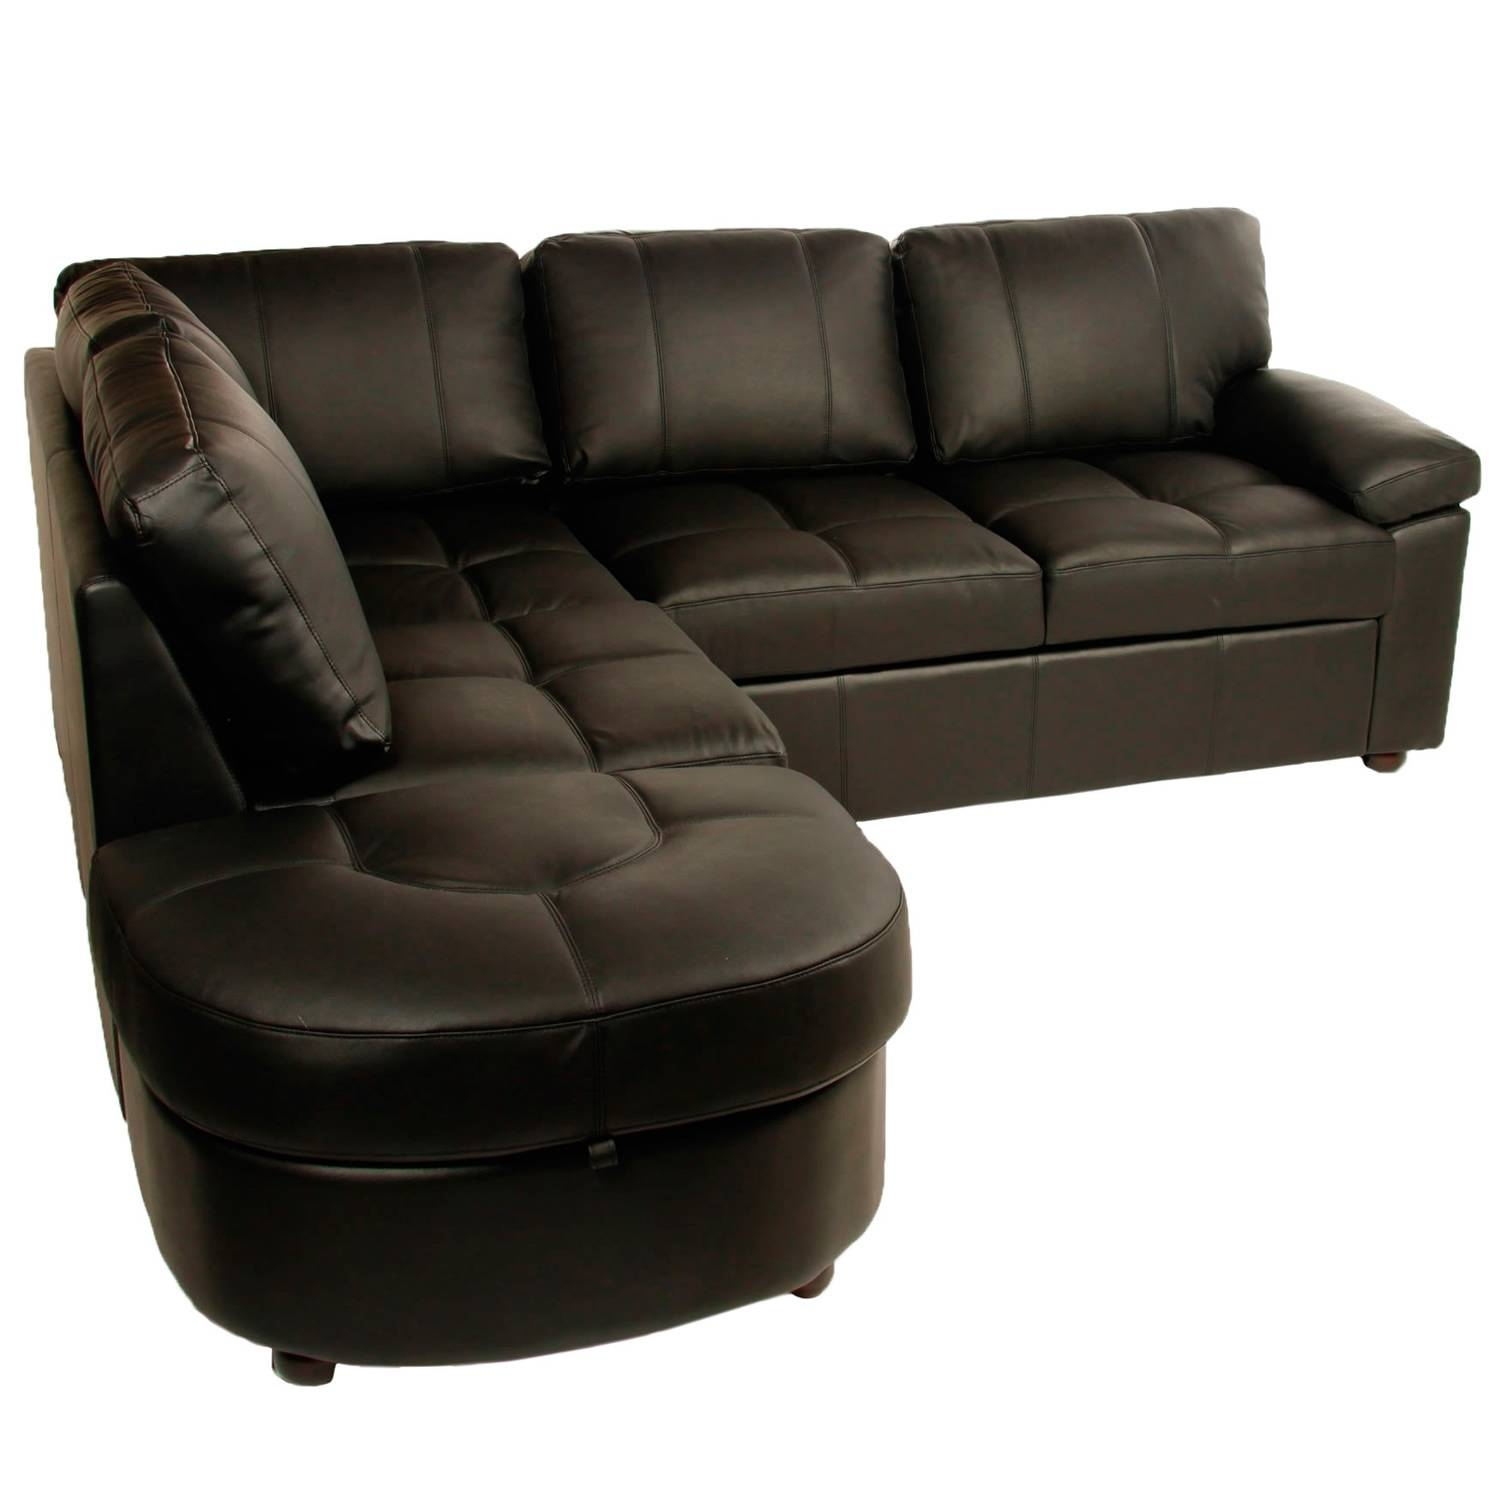 Corner Sleeper Sofa Uk | Tehranmix Decoration within Leather Corner Sofa Bed (Image 6 of 30)